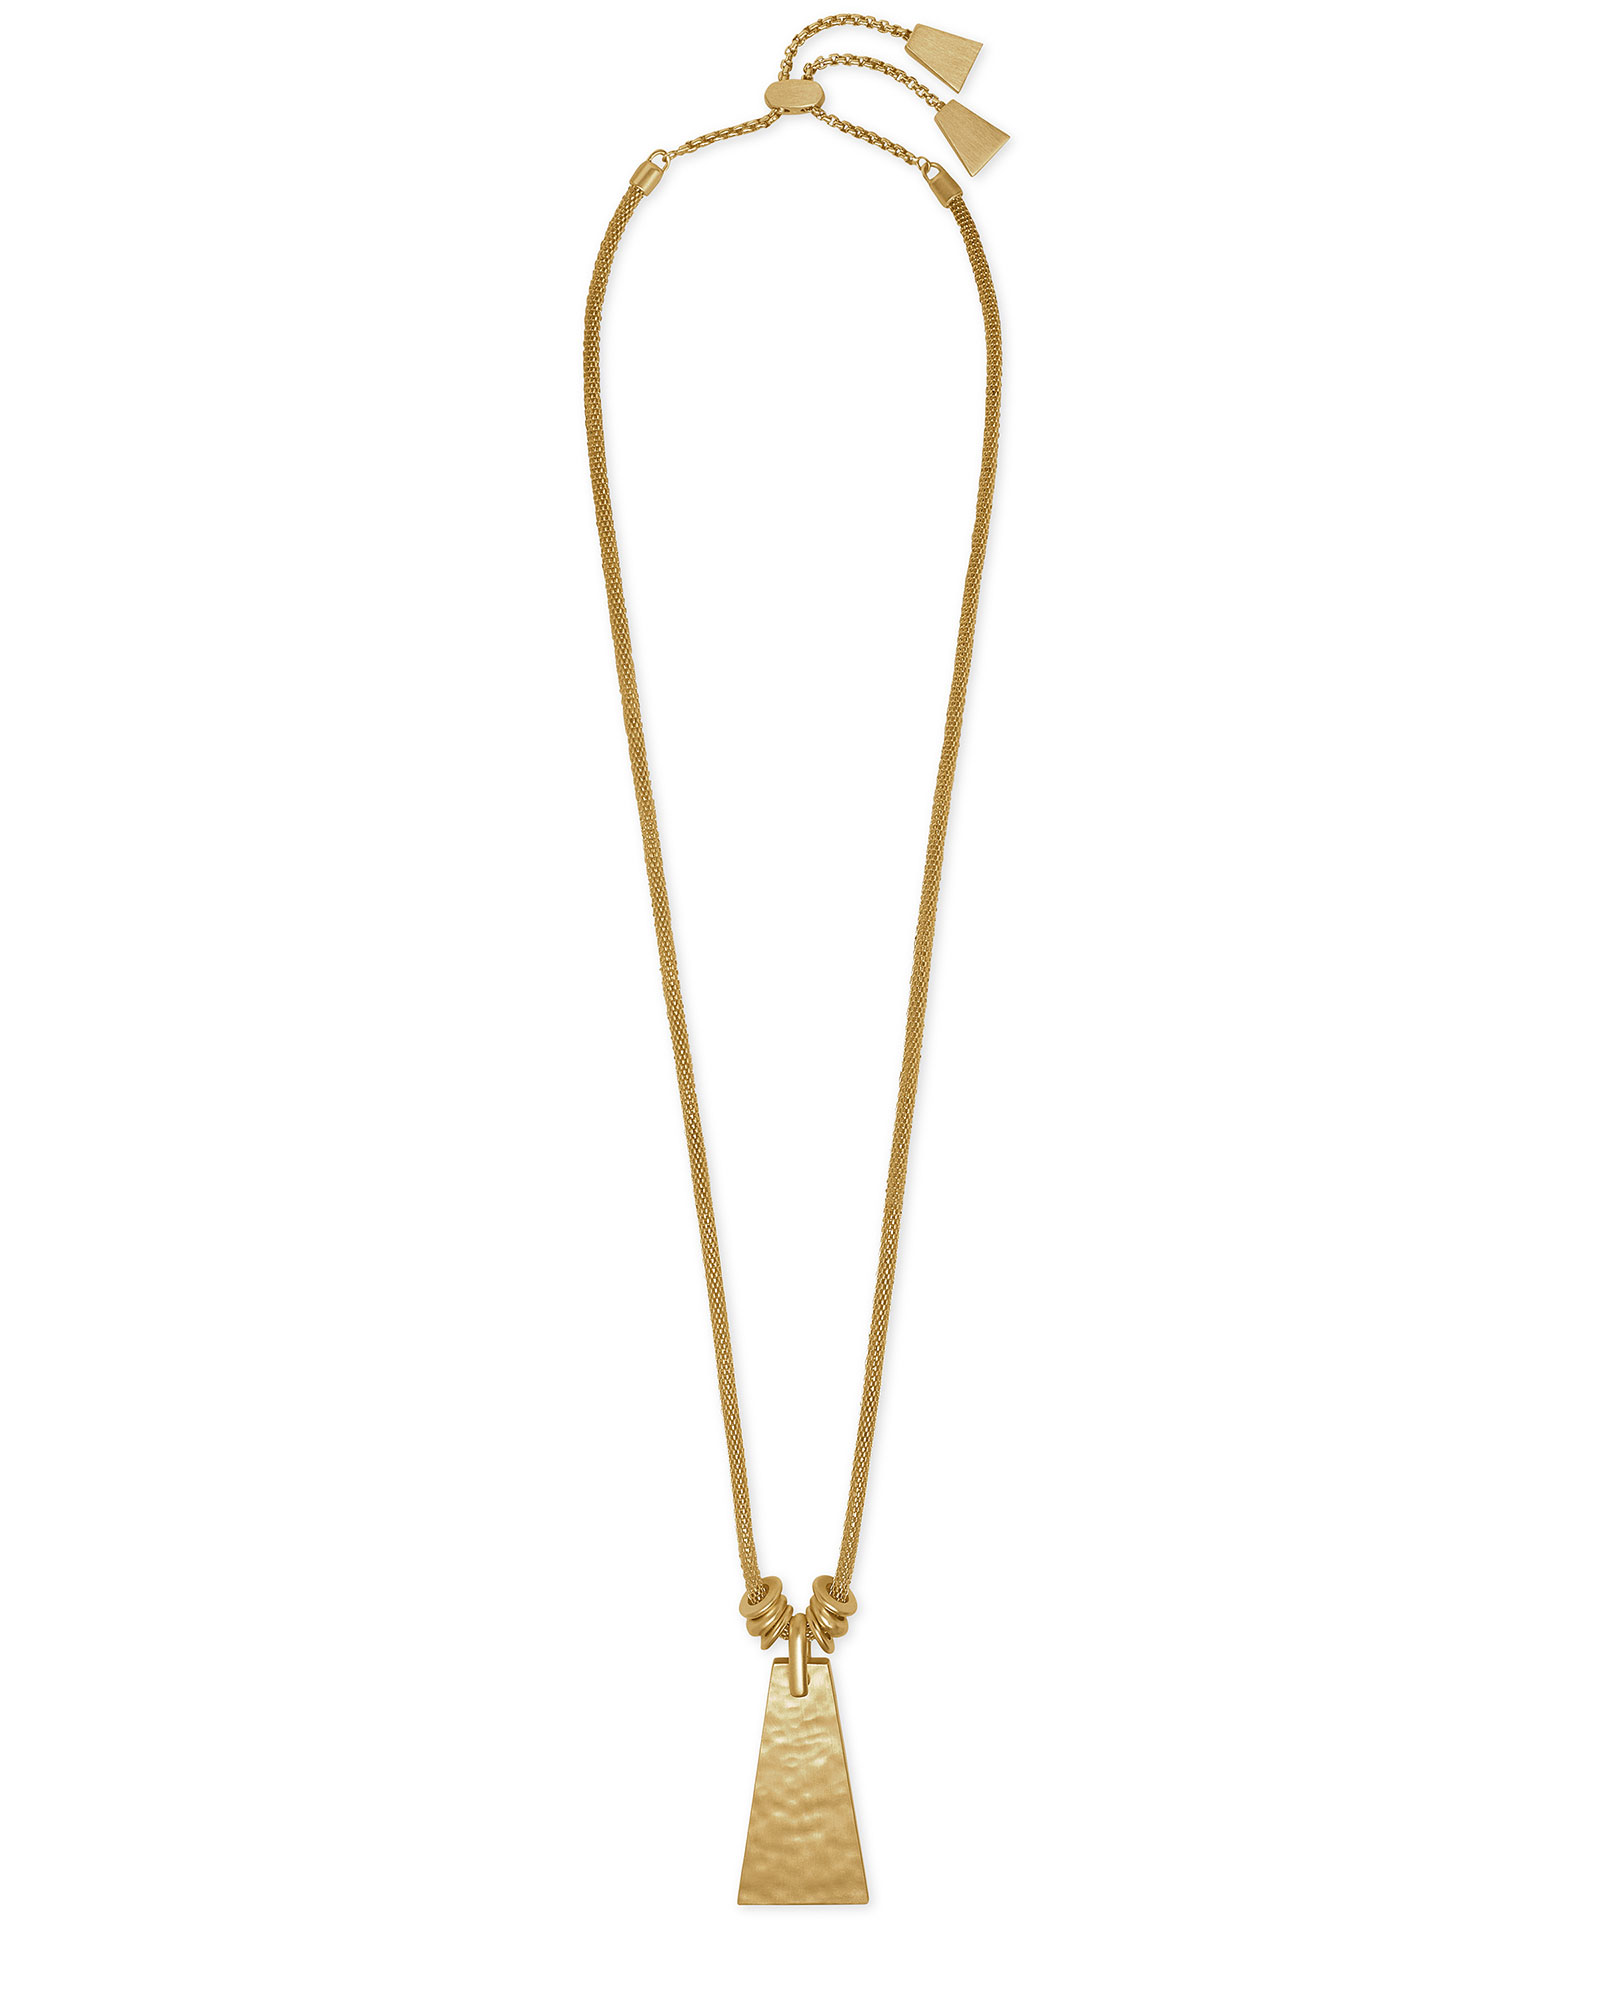 Keerti Long Pendant Necklace in Vintage Gold